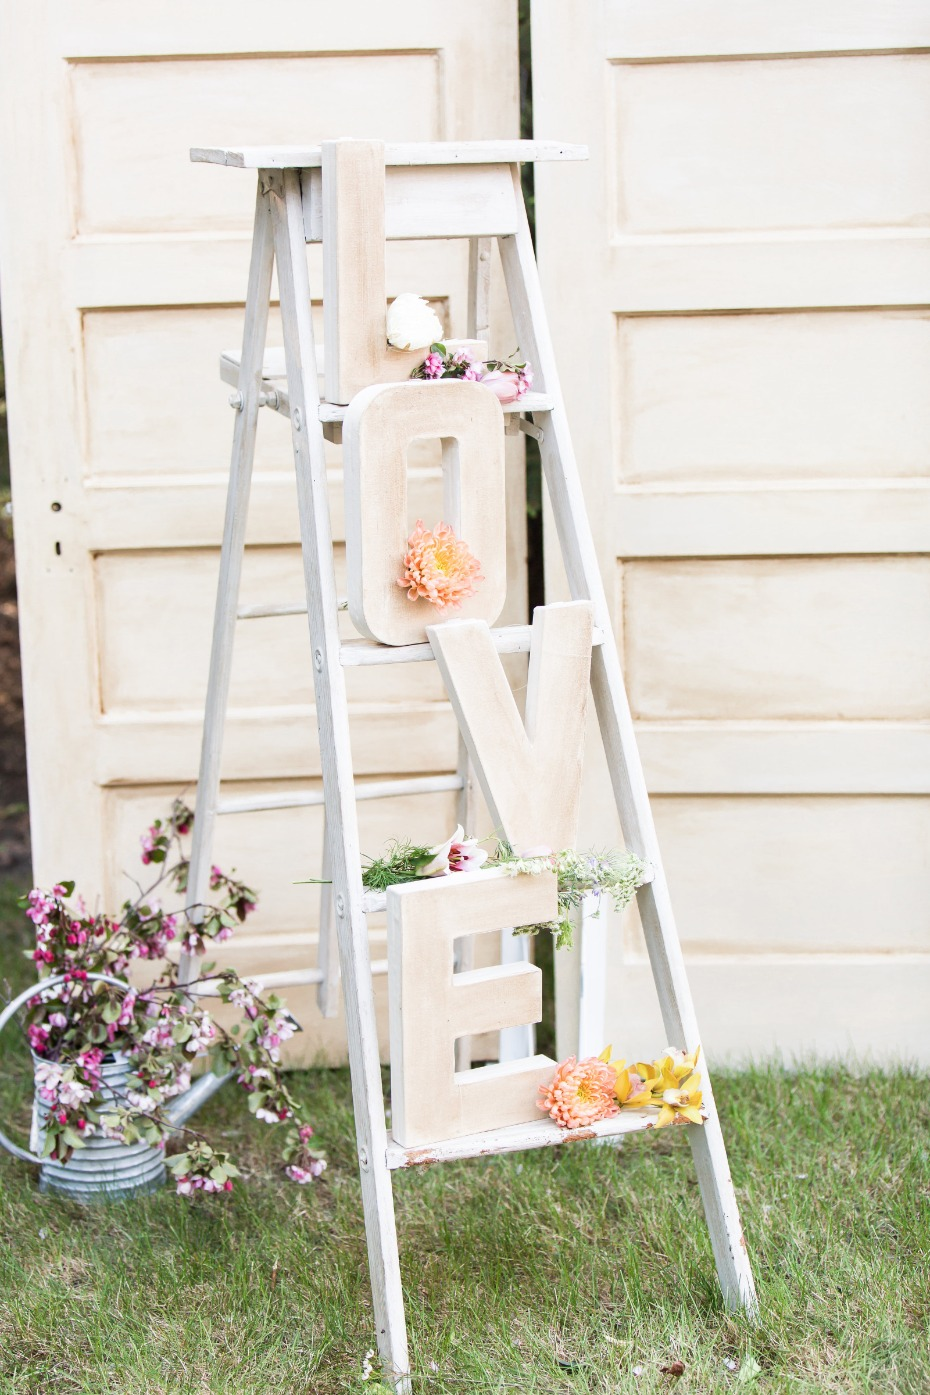 Cute decor idea with a ladder and giant letters